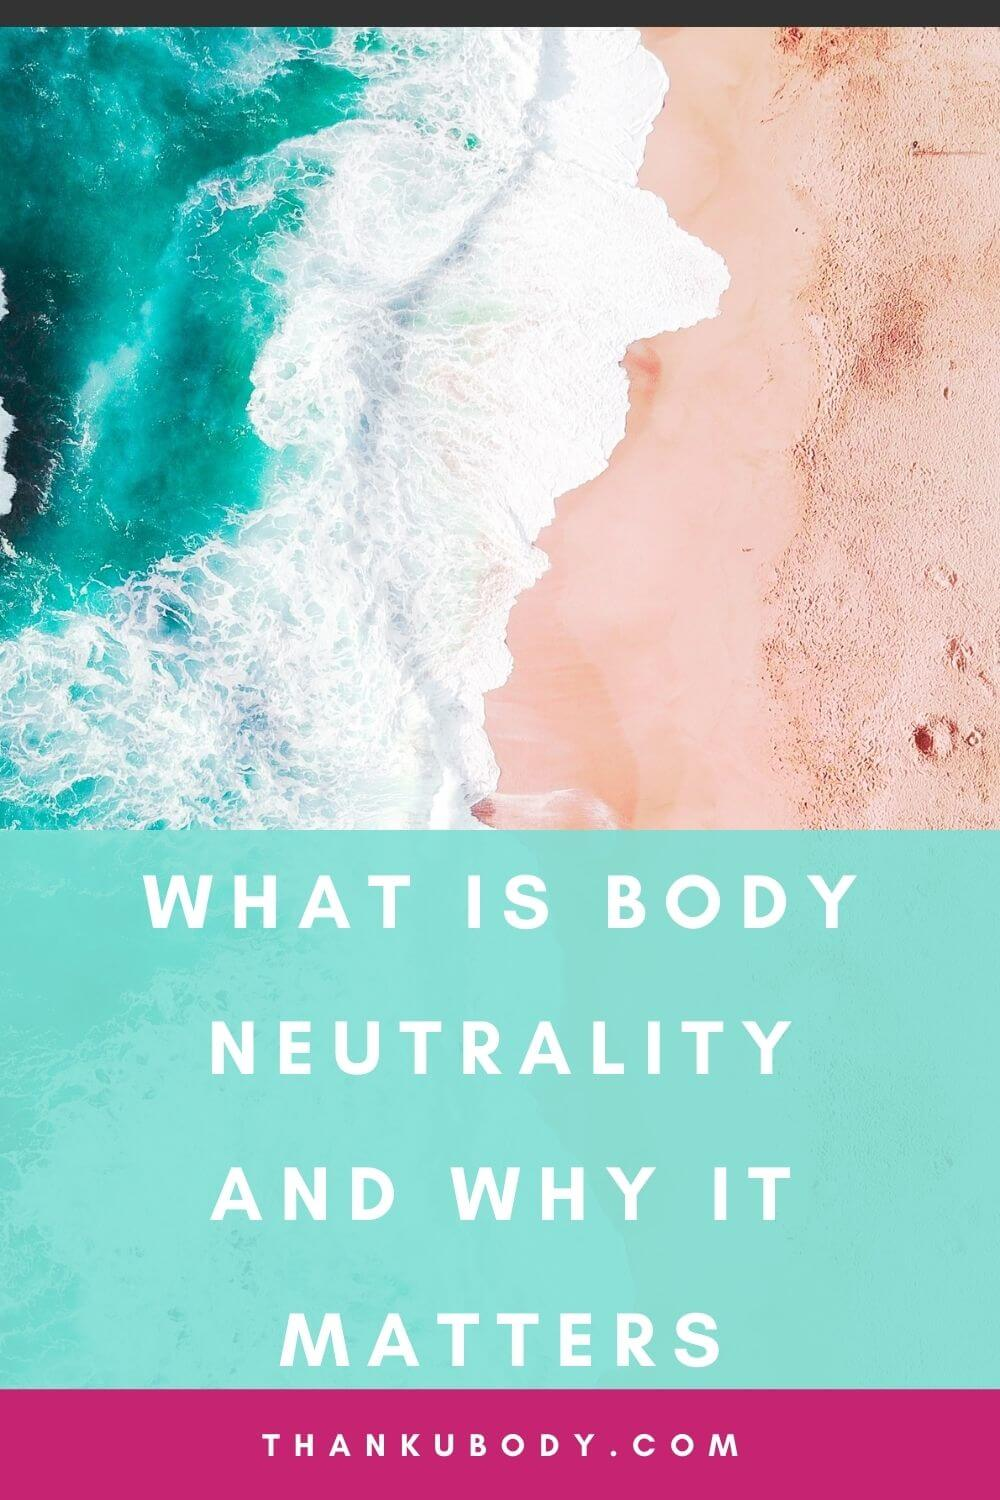 What is Body Neutrality, and Why it Matters